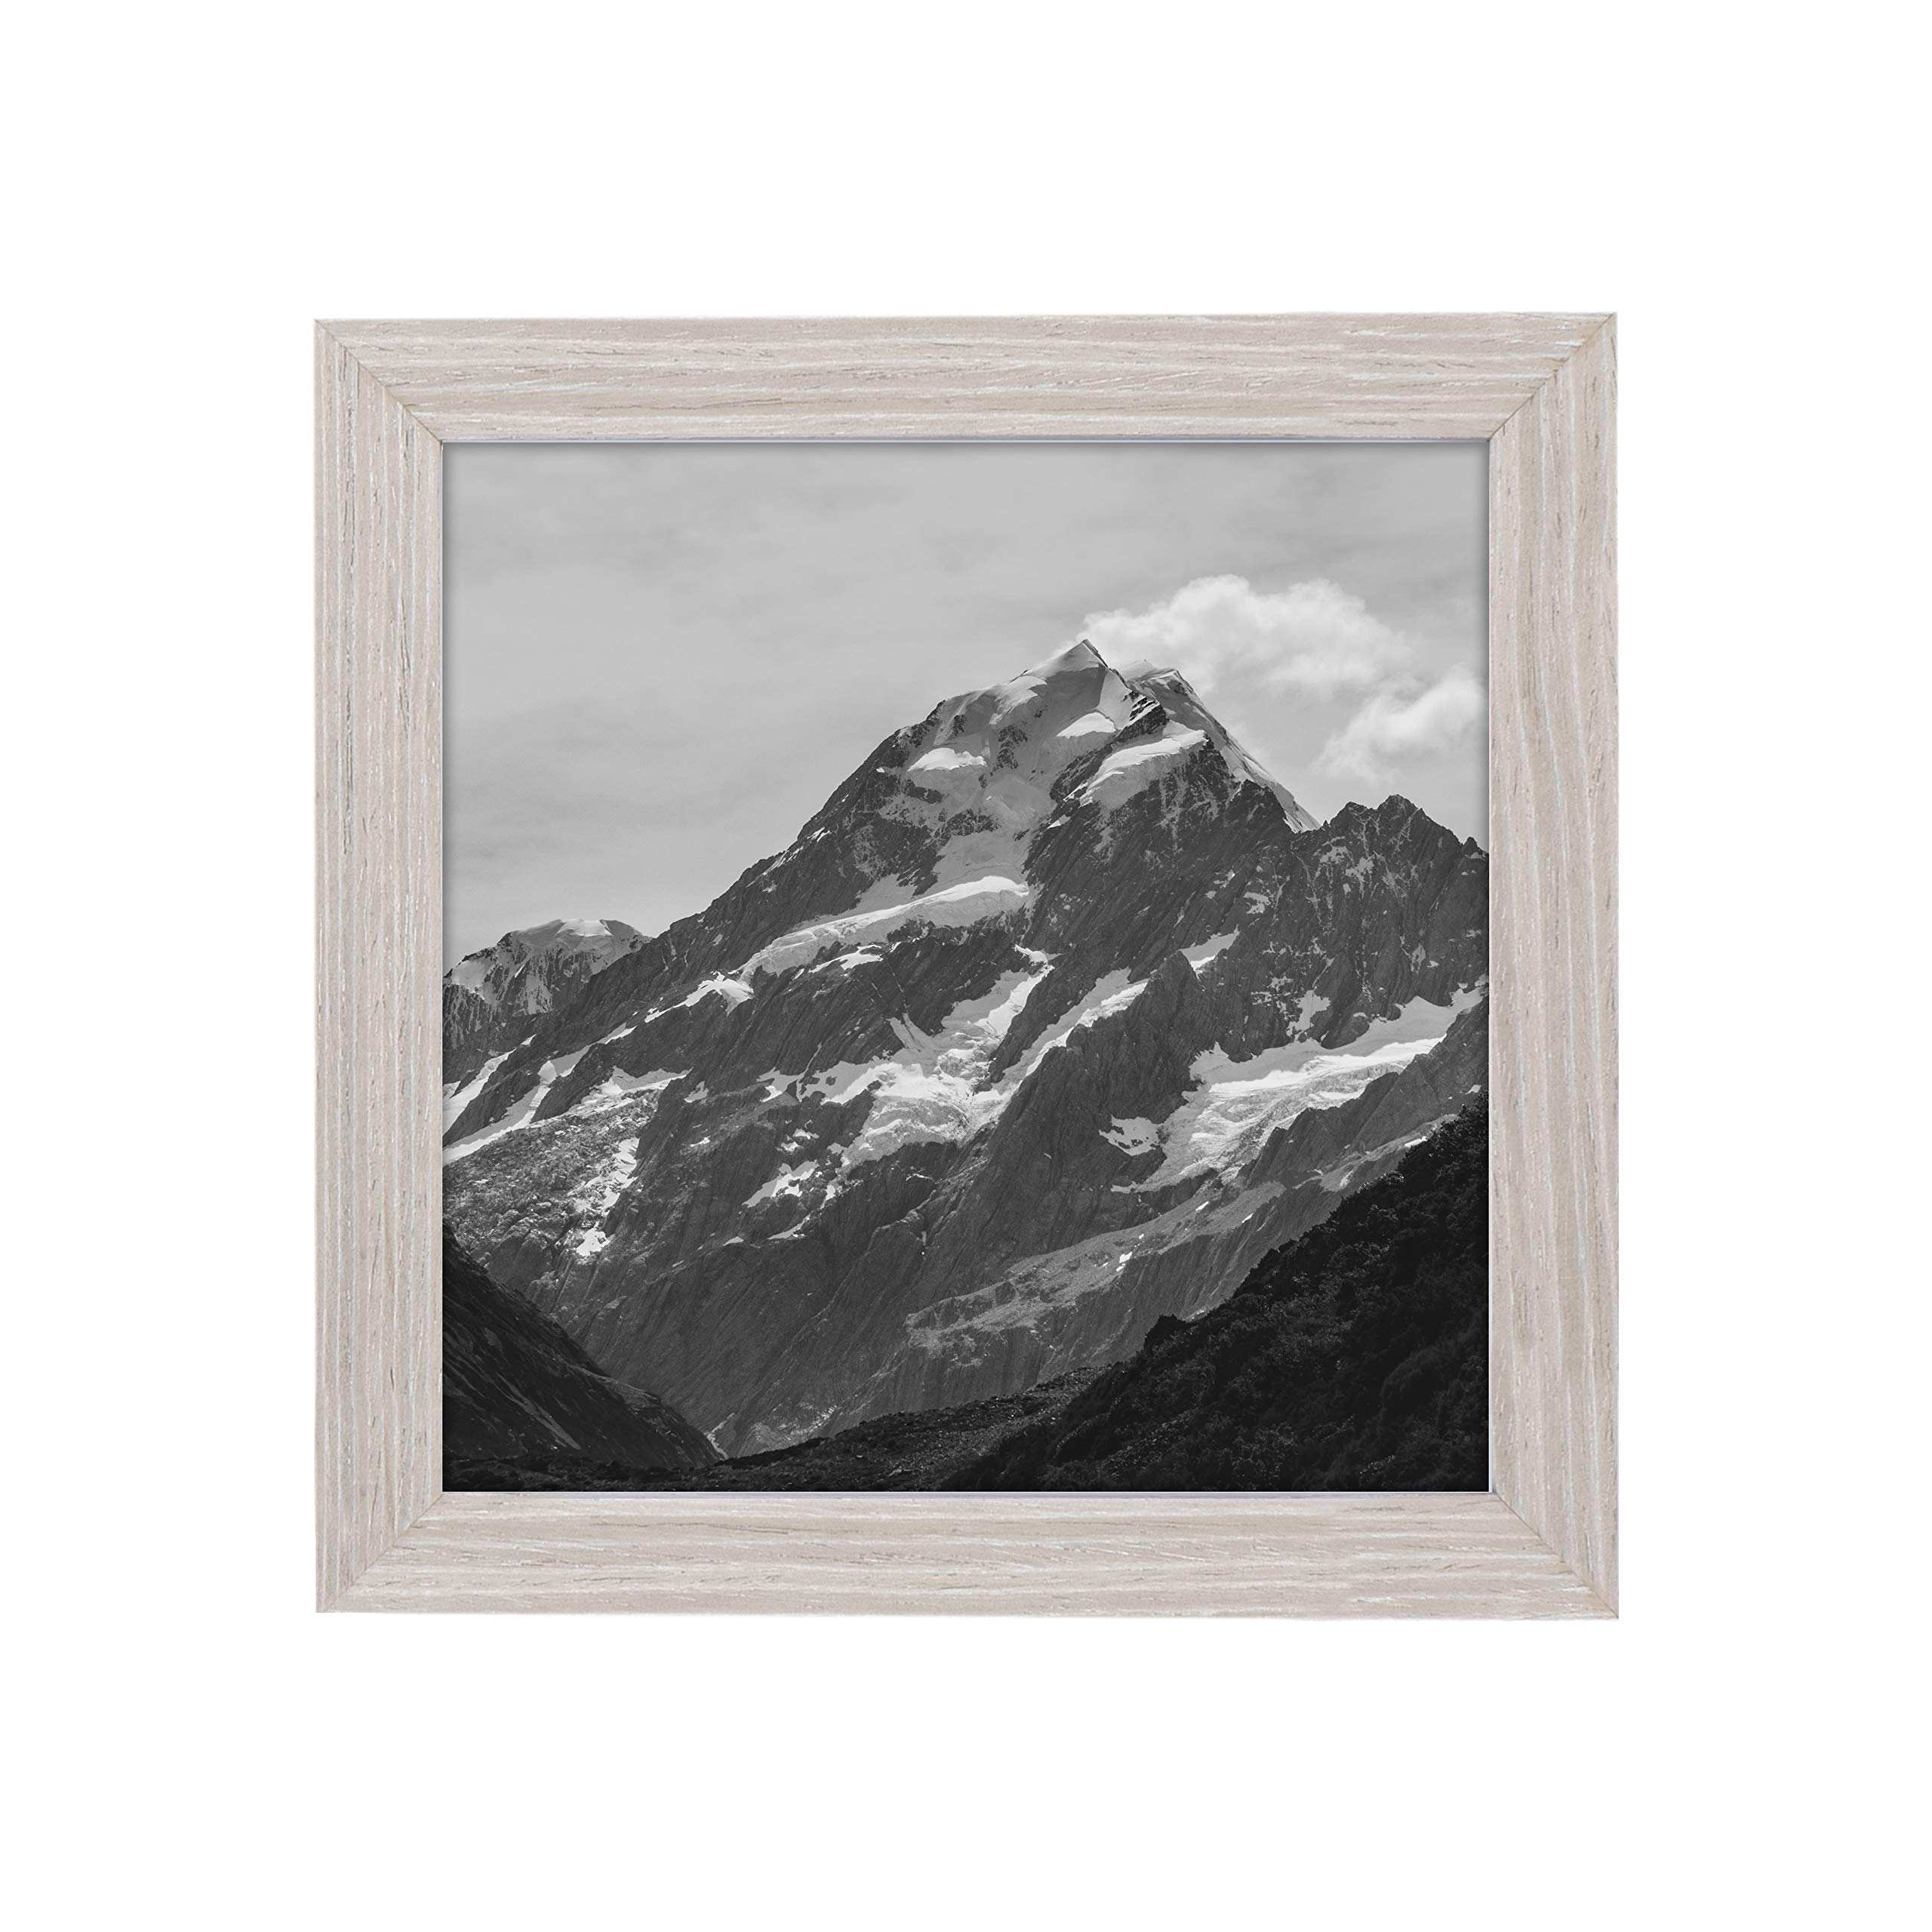 EcoHome 8x8 Wood Picture Frame - or 4x4 Matted, Natural Oak, Modern Square, Hanging Kit Included